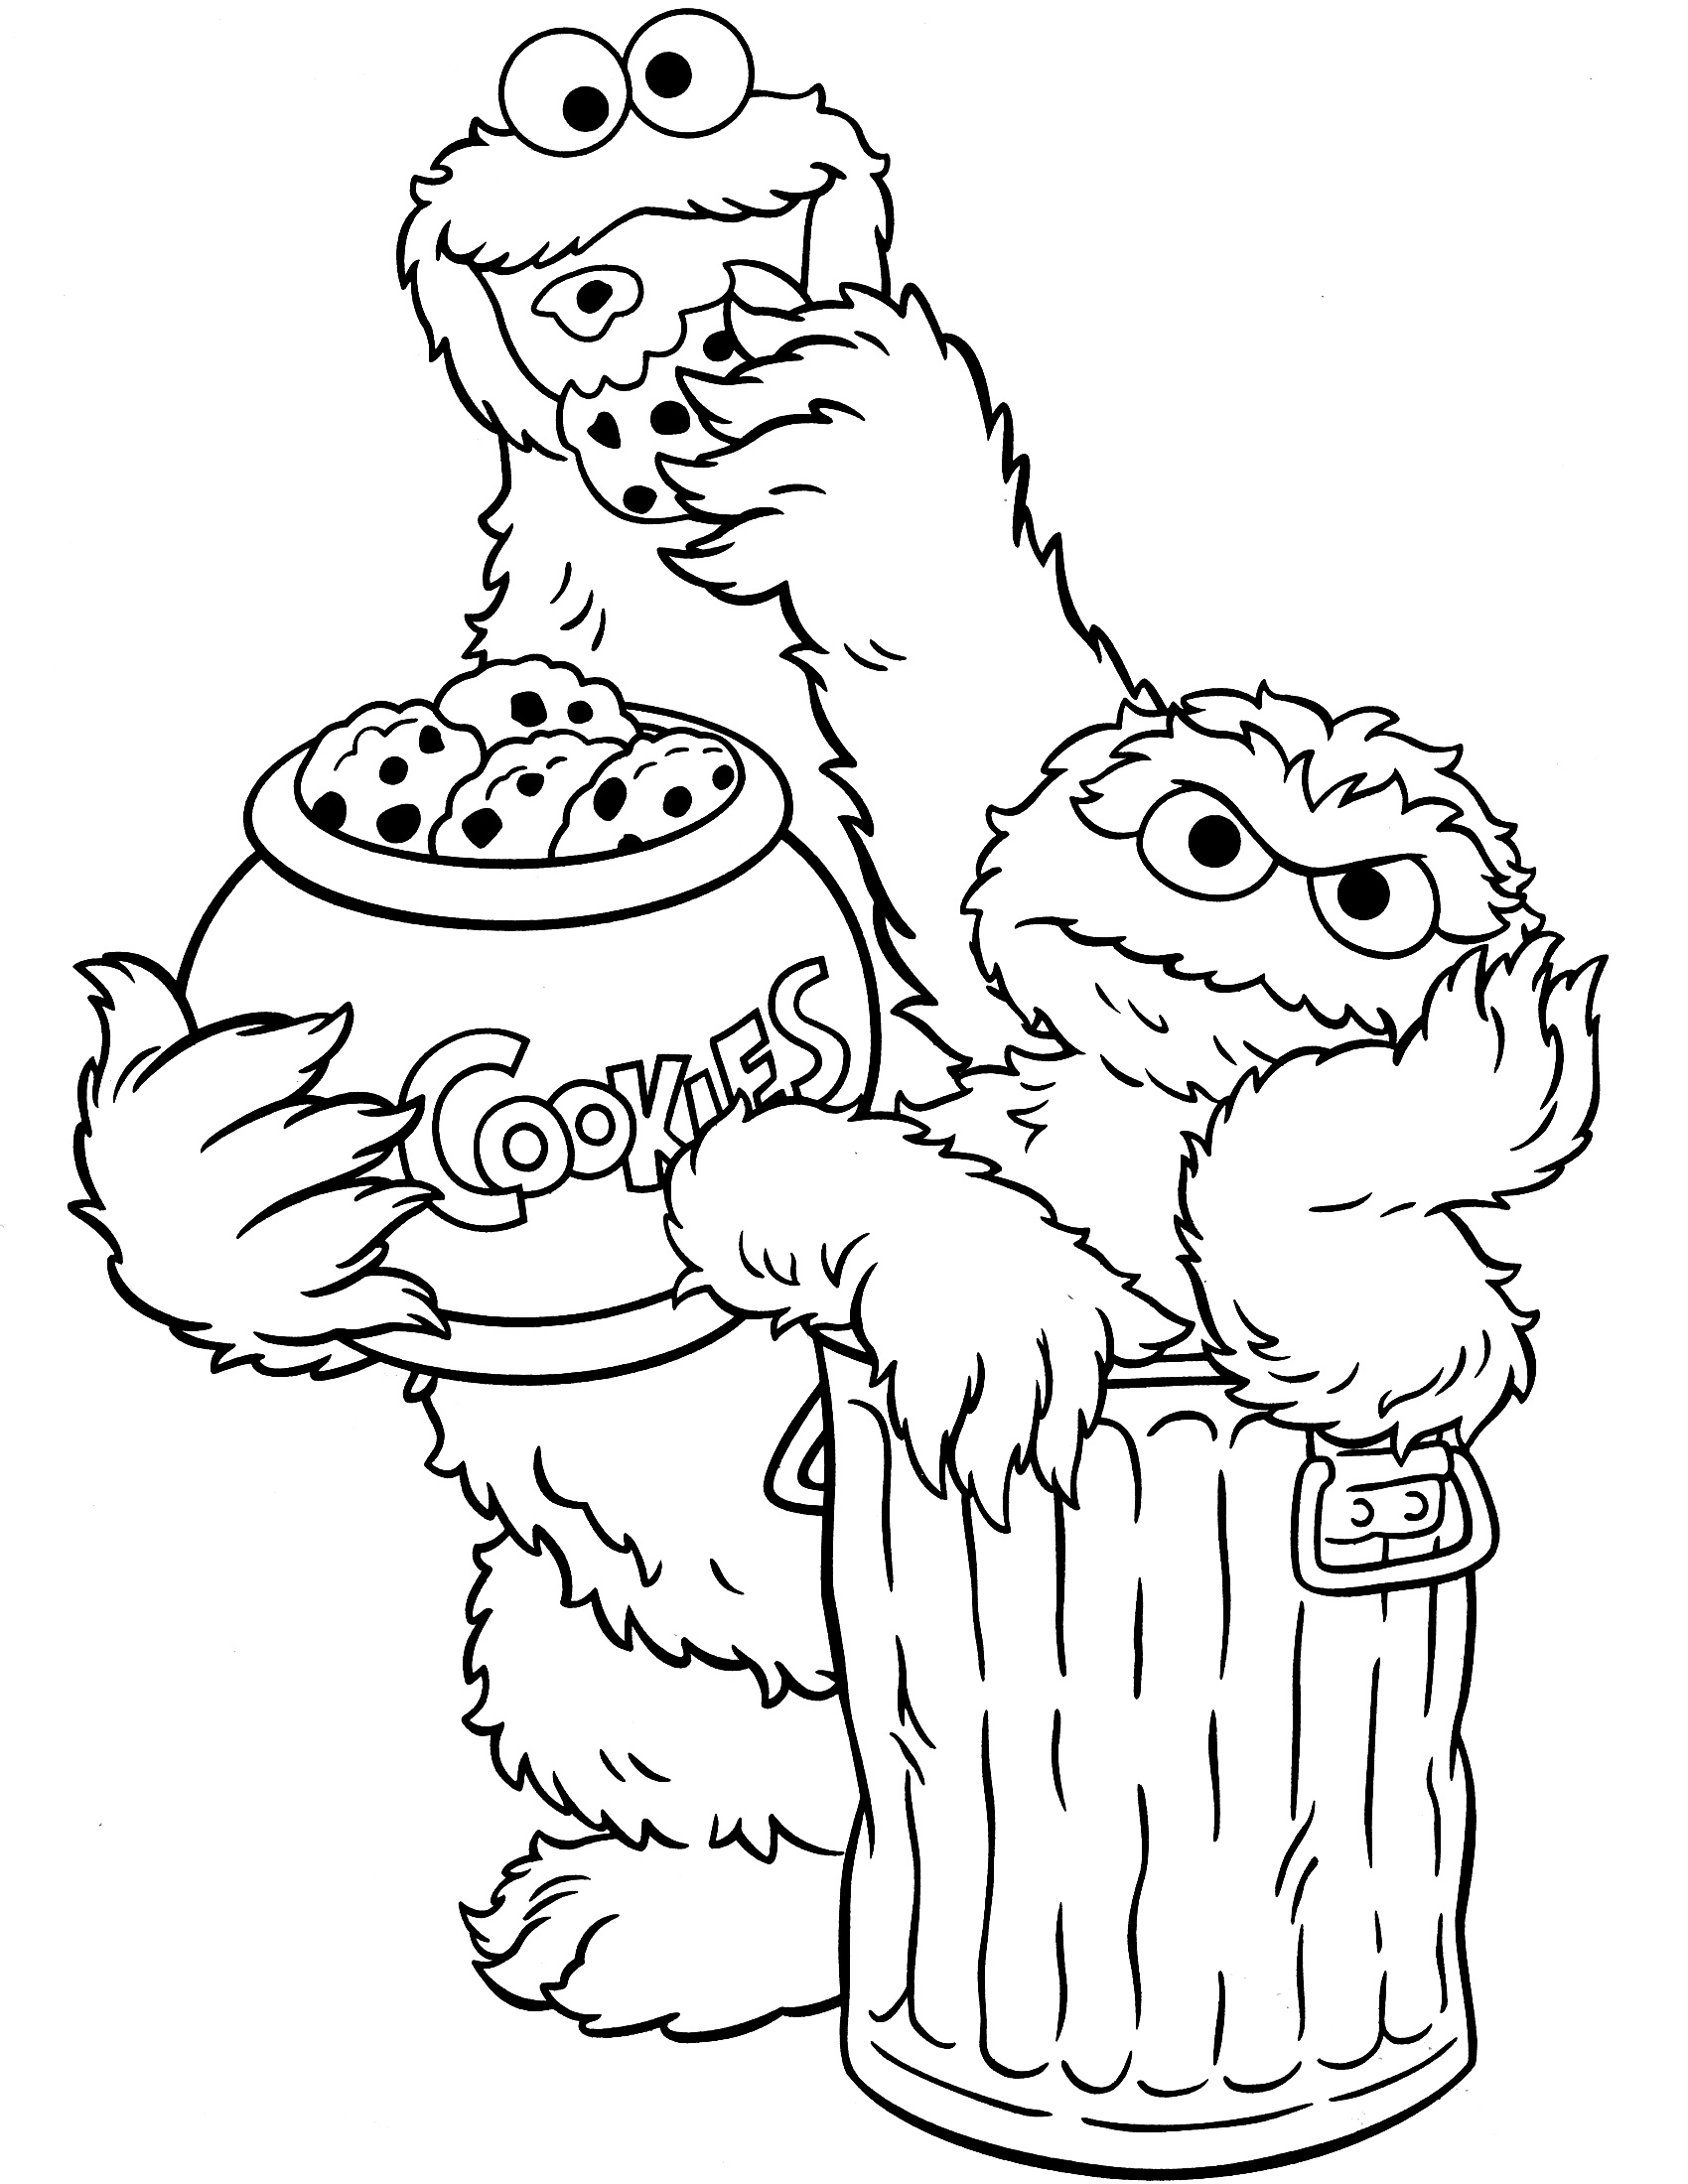 Beautiful Free Printable Elmo Coloring Pages For Kids And Childlife